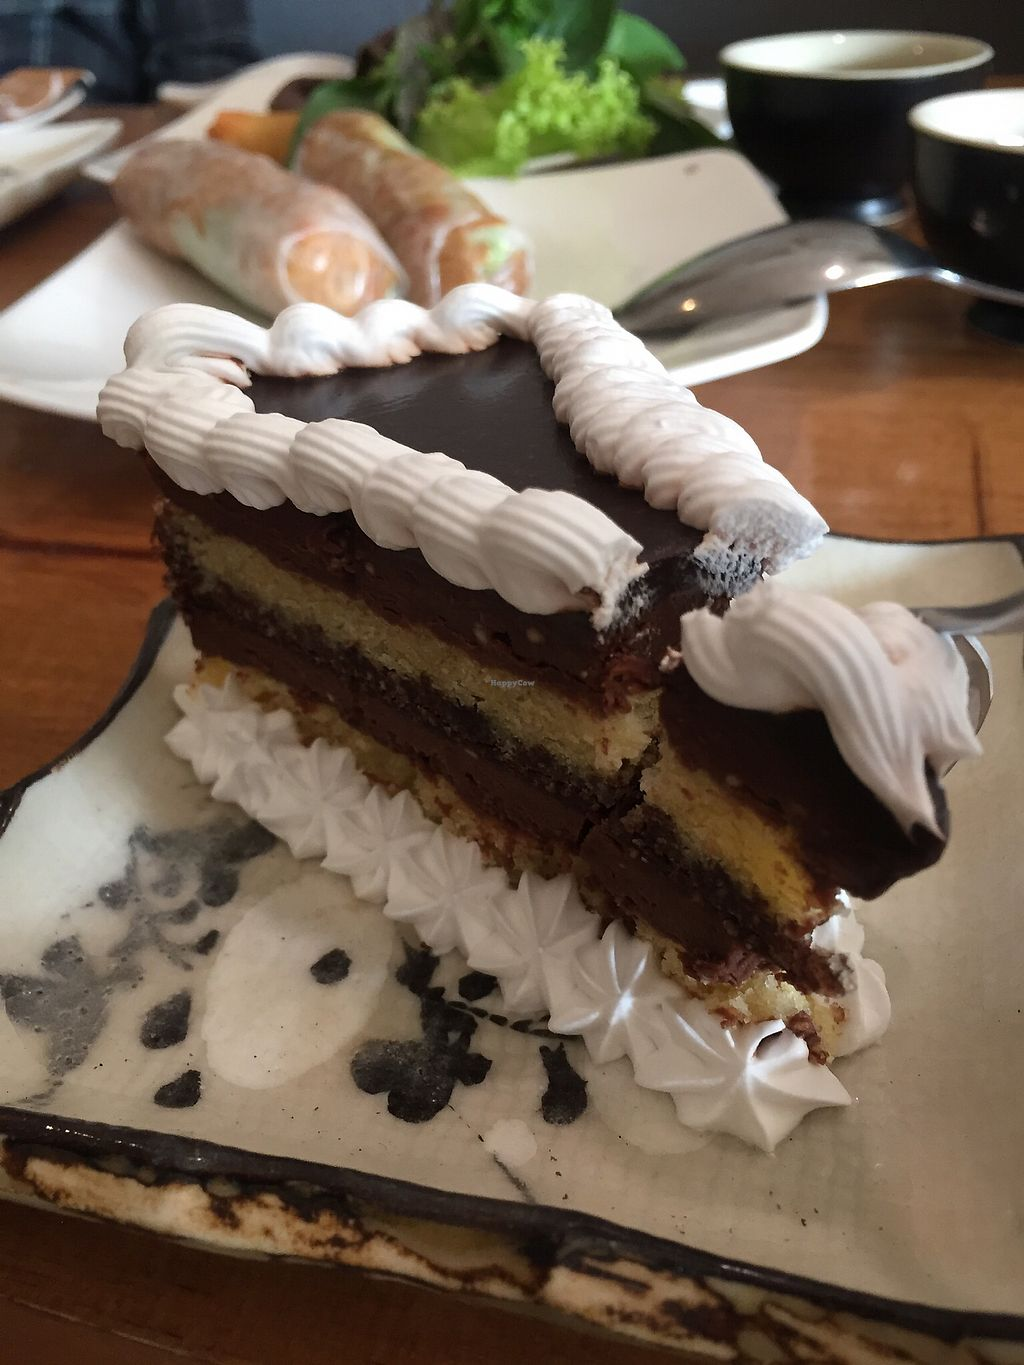 """Photo of Vegan Kitchen  by <a href=""""/members/profile/TracyL%C3%AA"""">TracyLê</a> <br/>Vegan Opera cake <br/> January 6, 2018  - <a href='/contact/abuse/image/91953/343648'>Report</a>"""